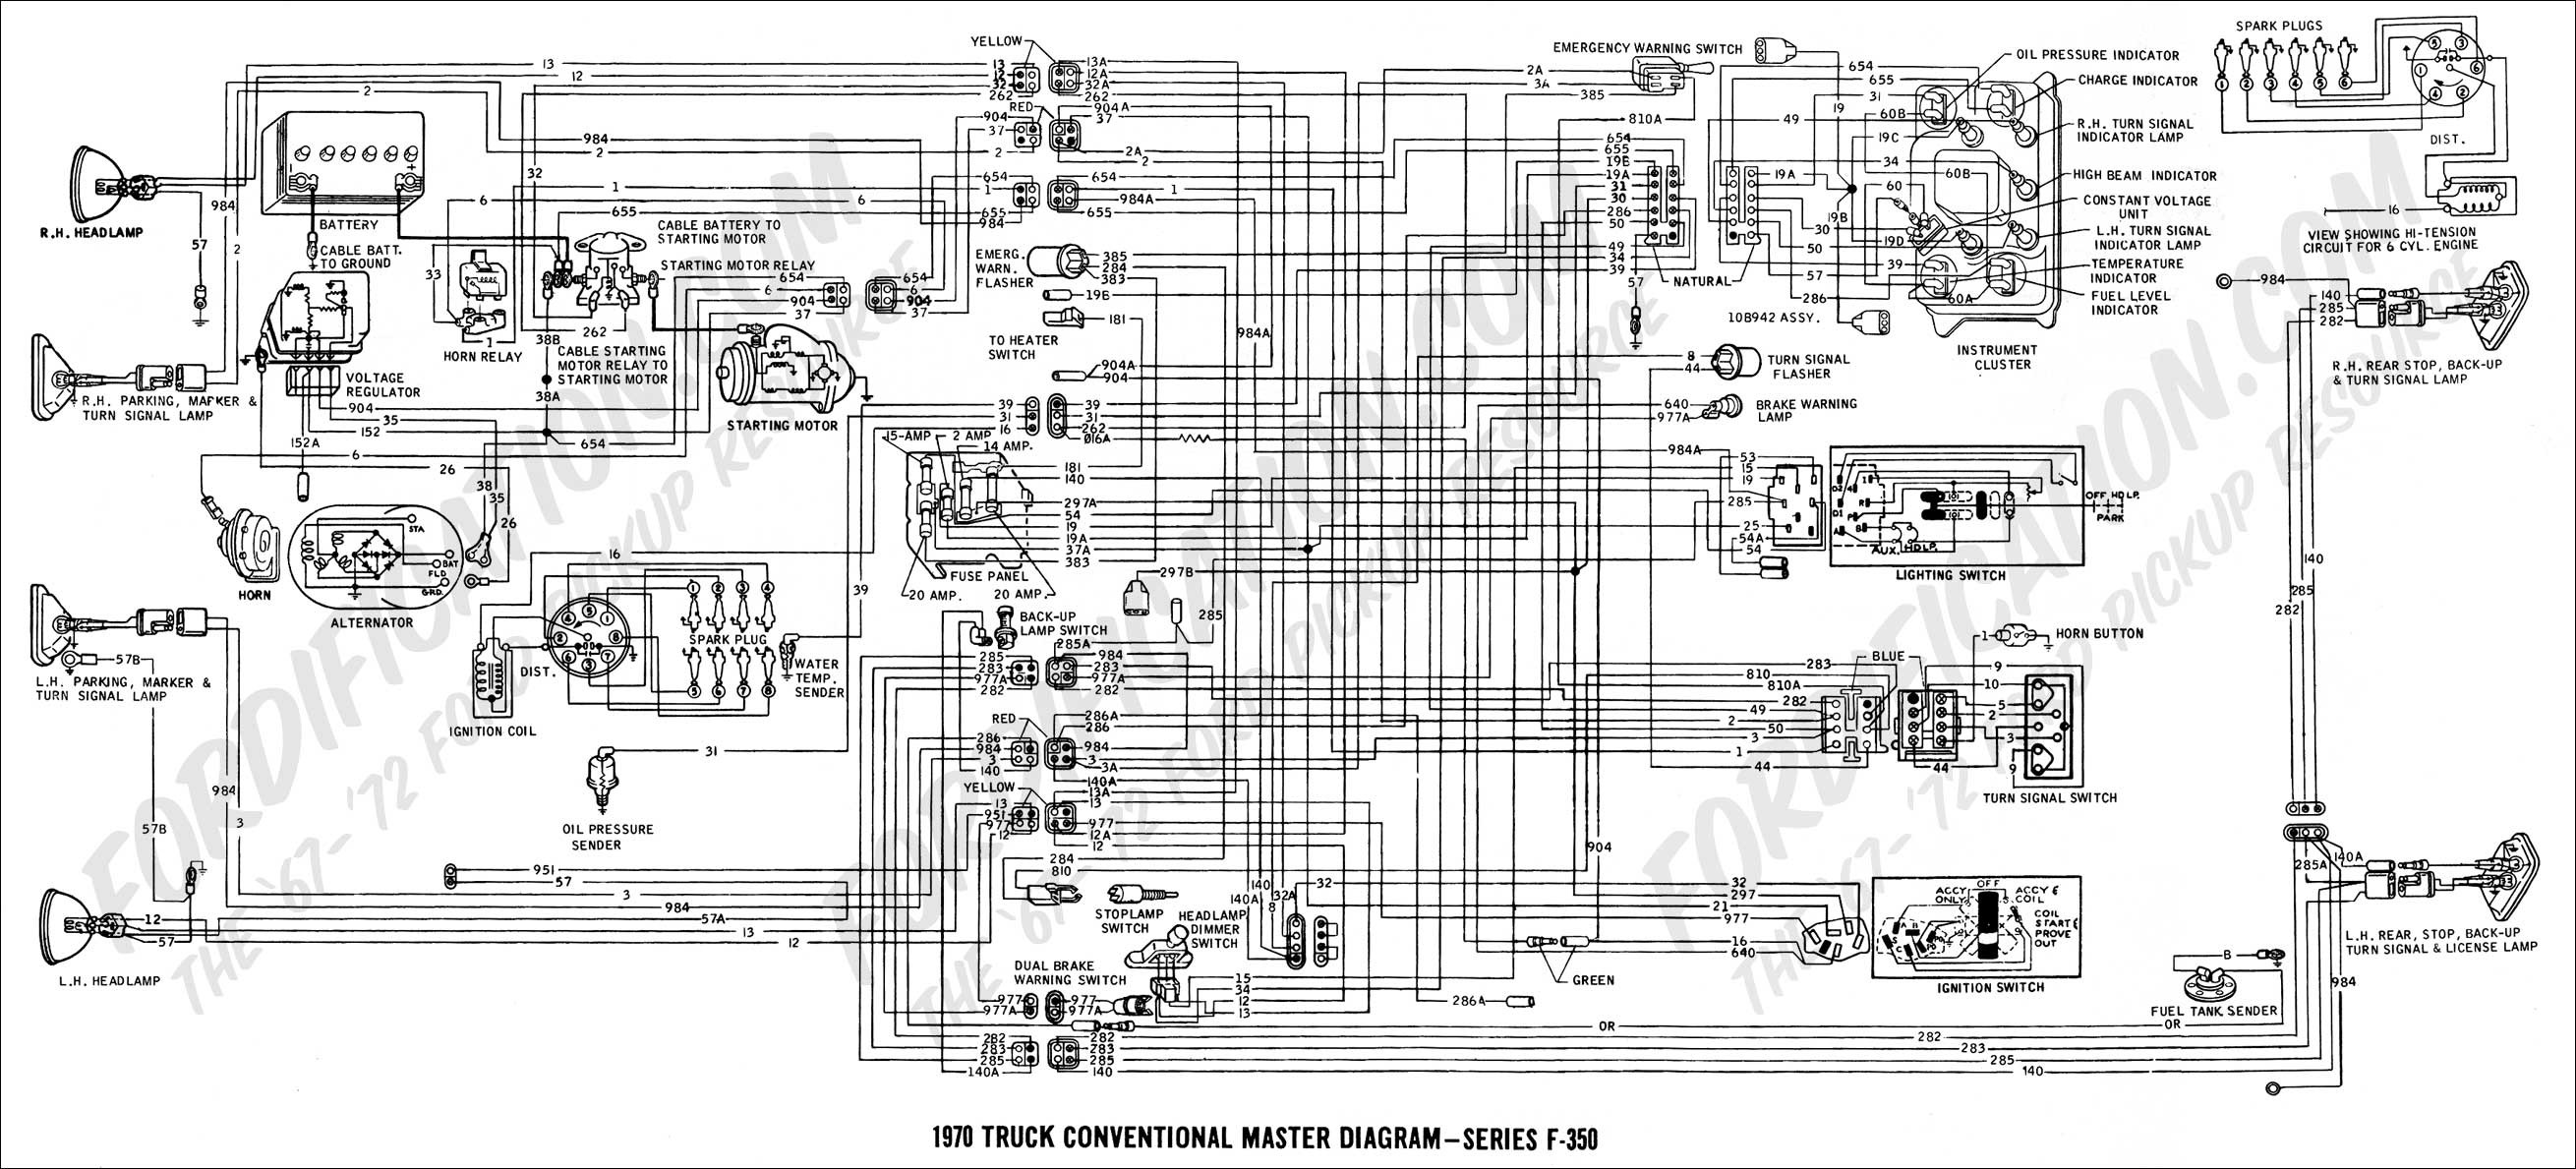 2004 ford Explorer Engine Diagram | My Wiring DIagram